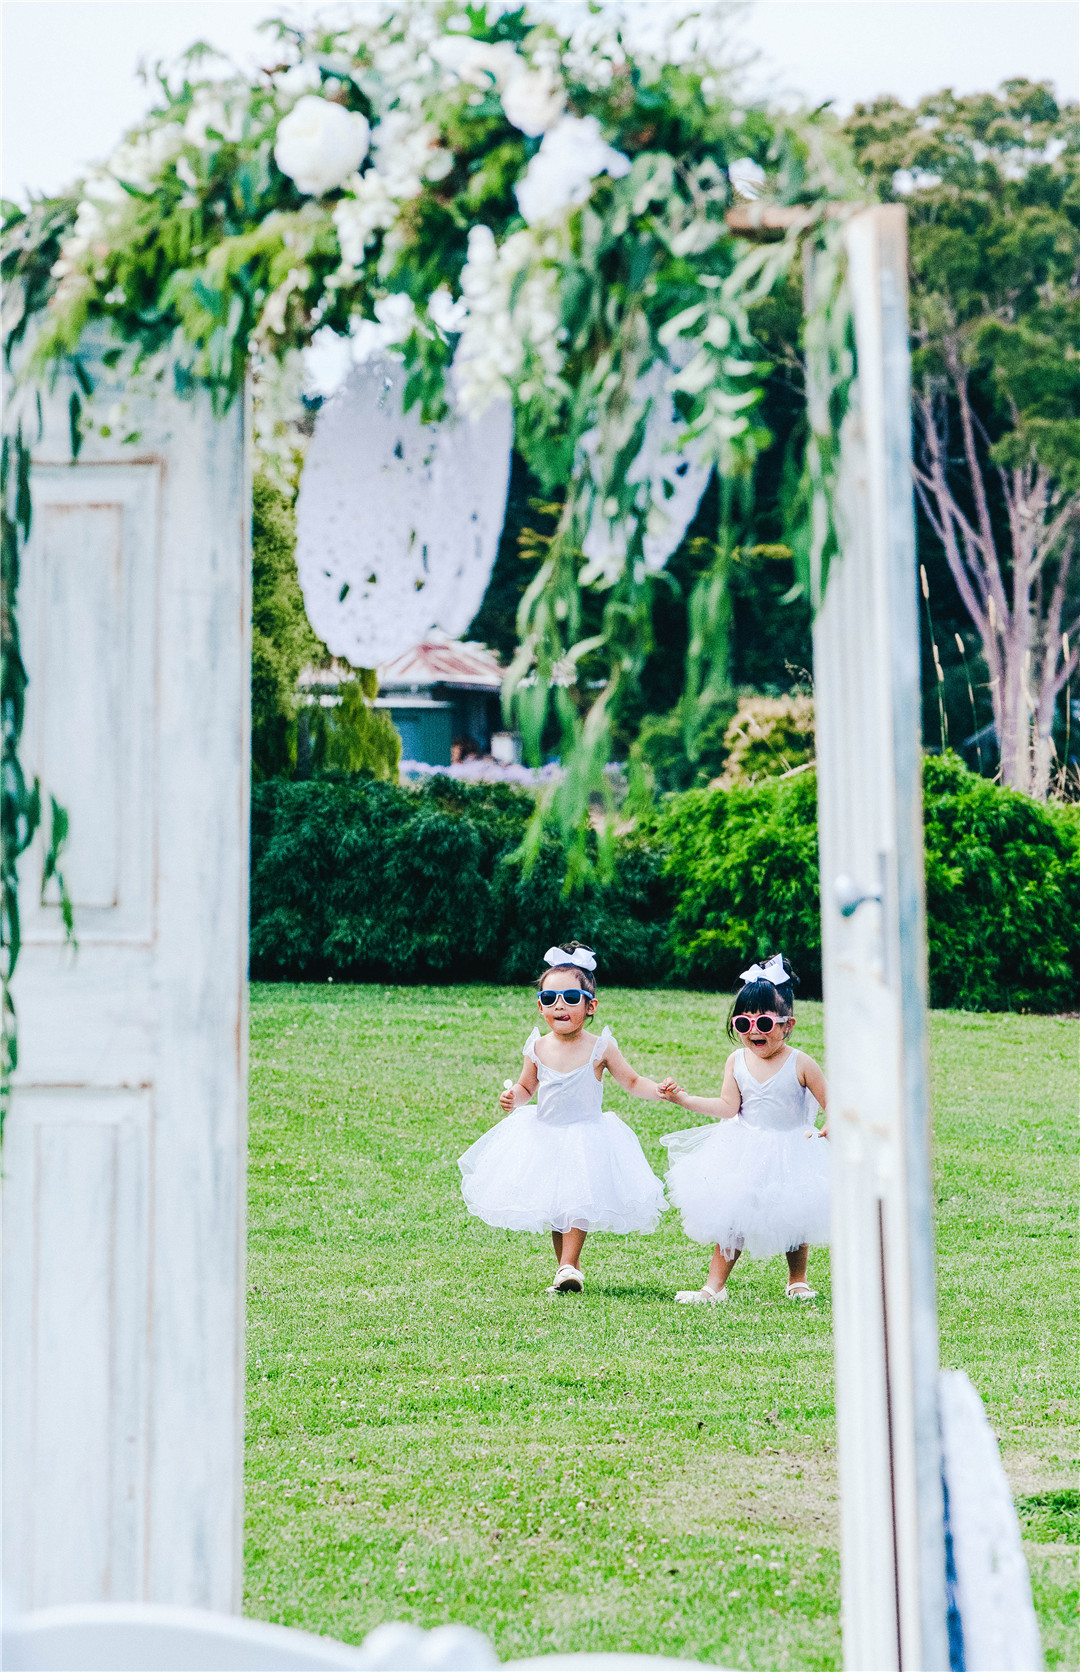 wedding planning Melbourne by Melbourne wedding planner Rosie from I DO 4 05